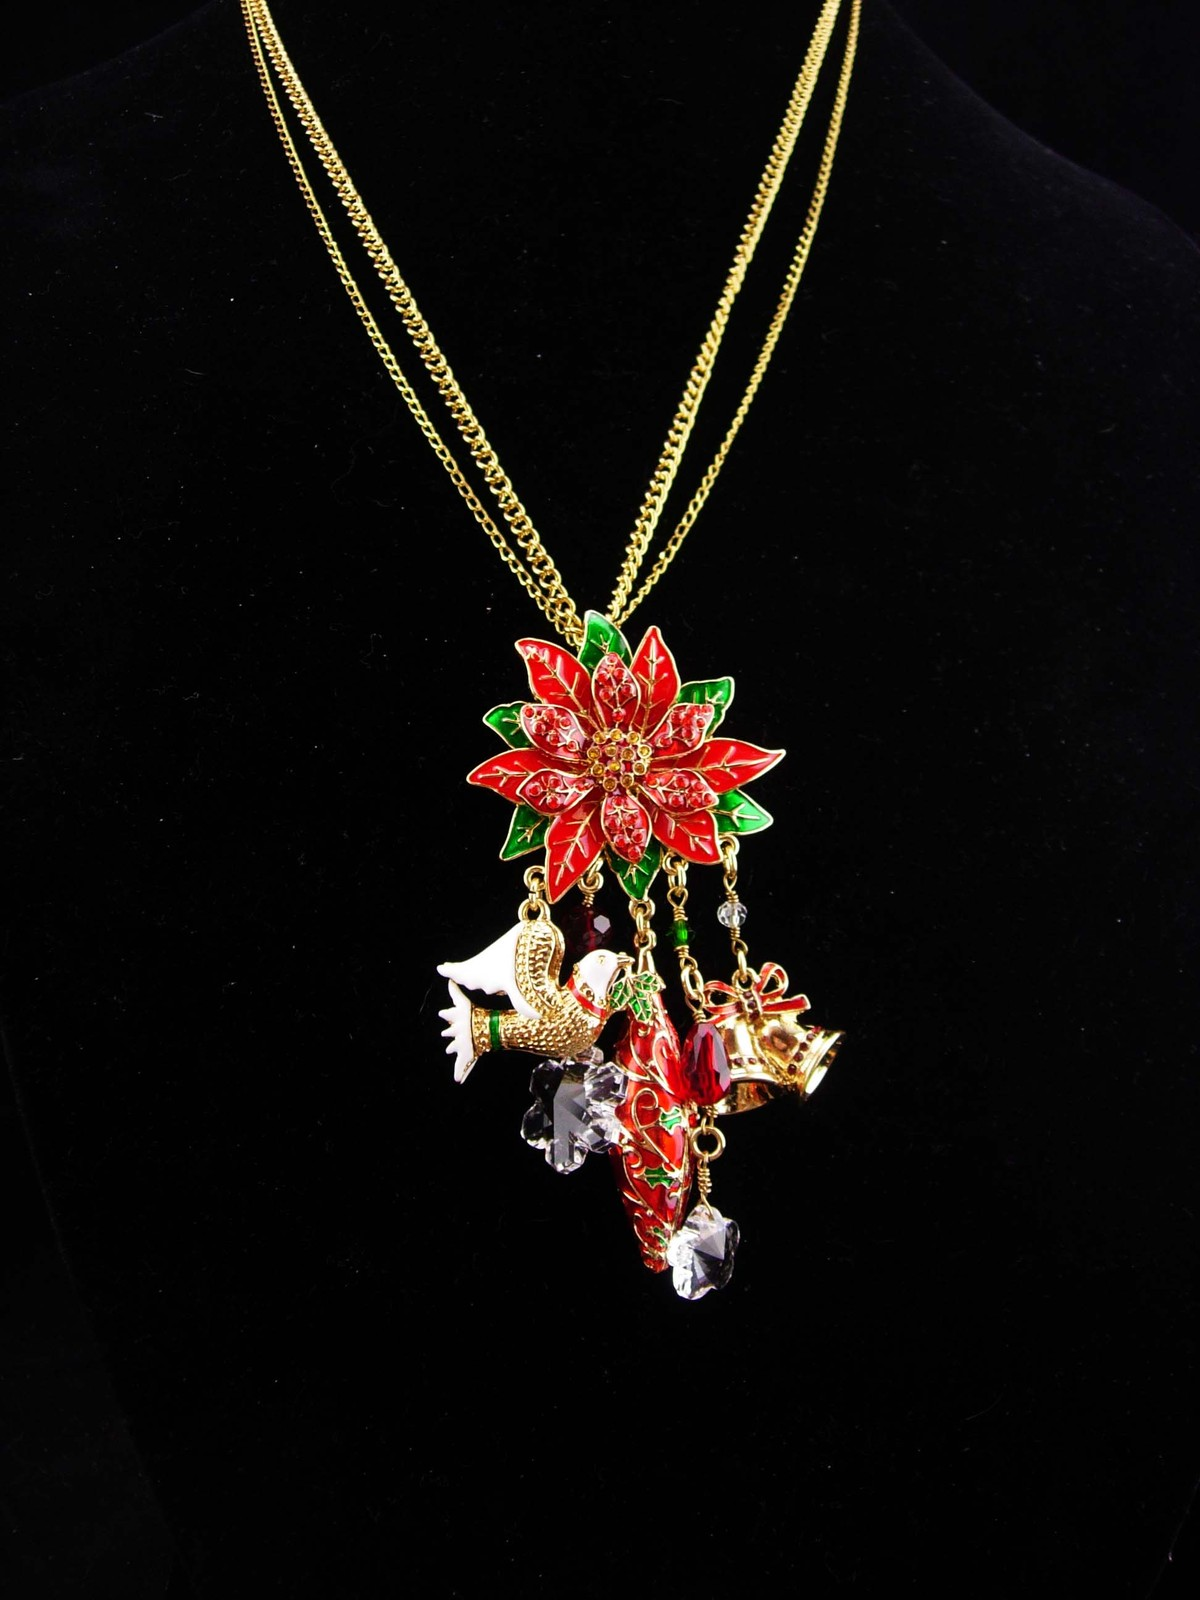 Ritzy couture necklace / vintage christmas earrings / costume jewelry lot / snow